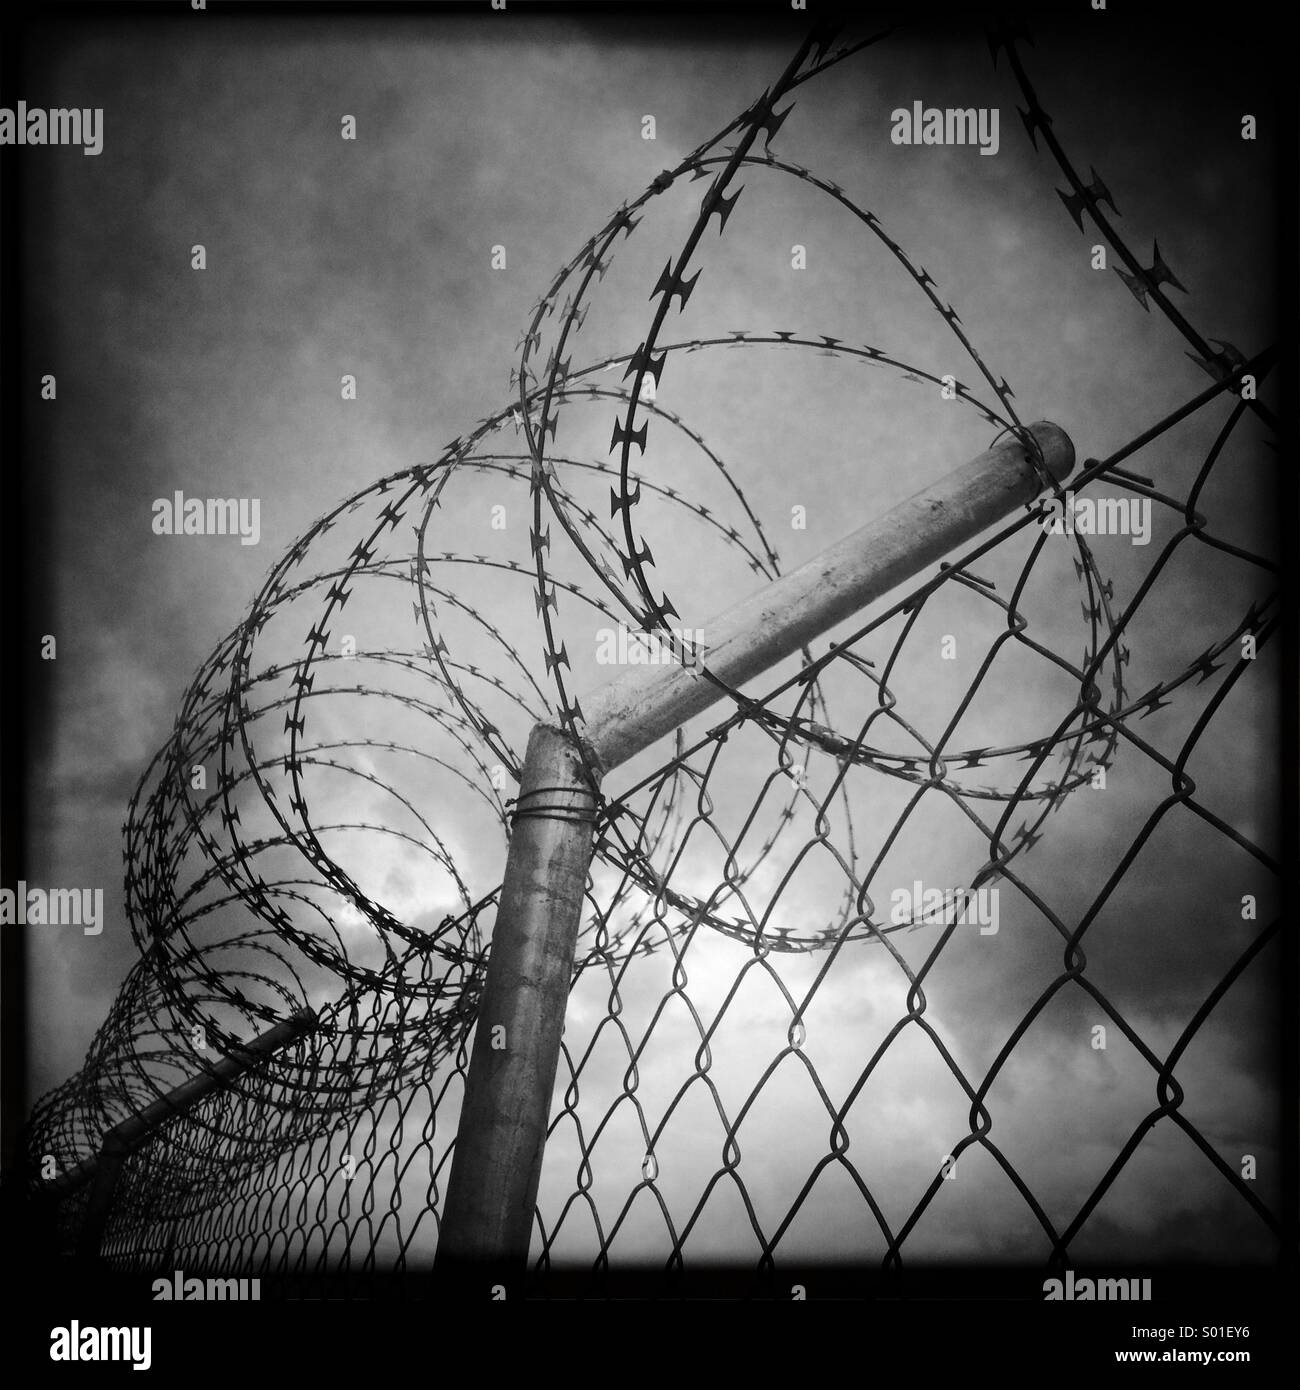 Black and white photo from a prison fence with barbed wire